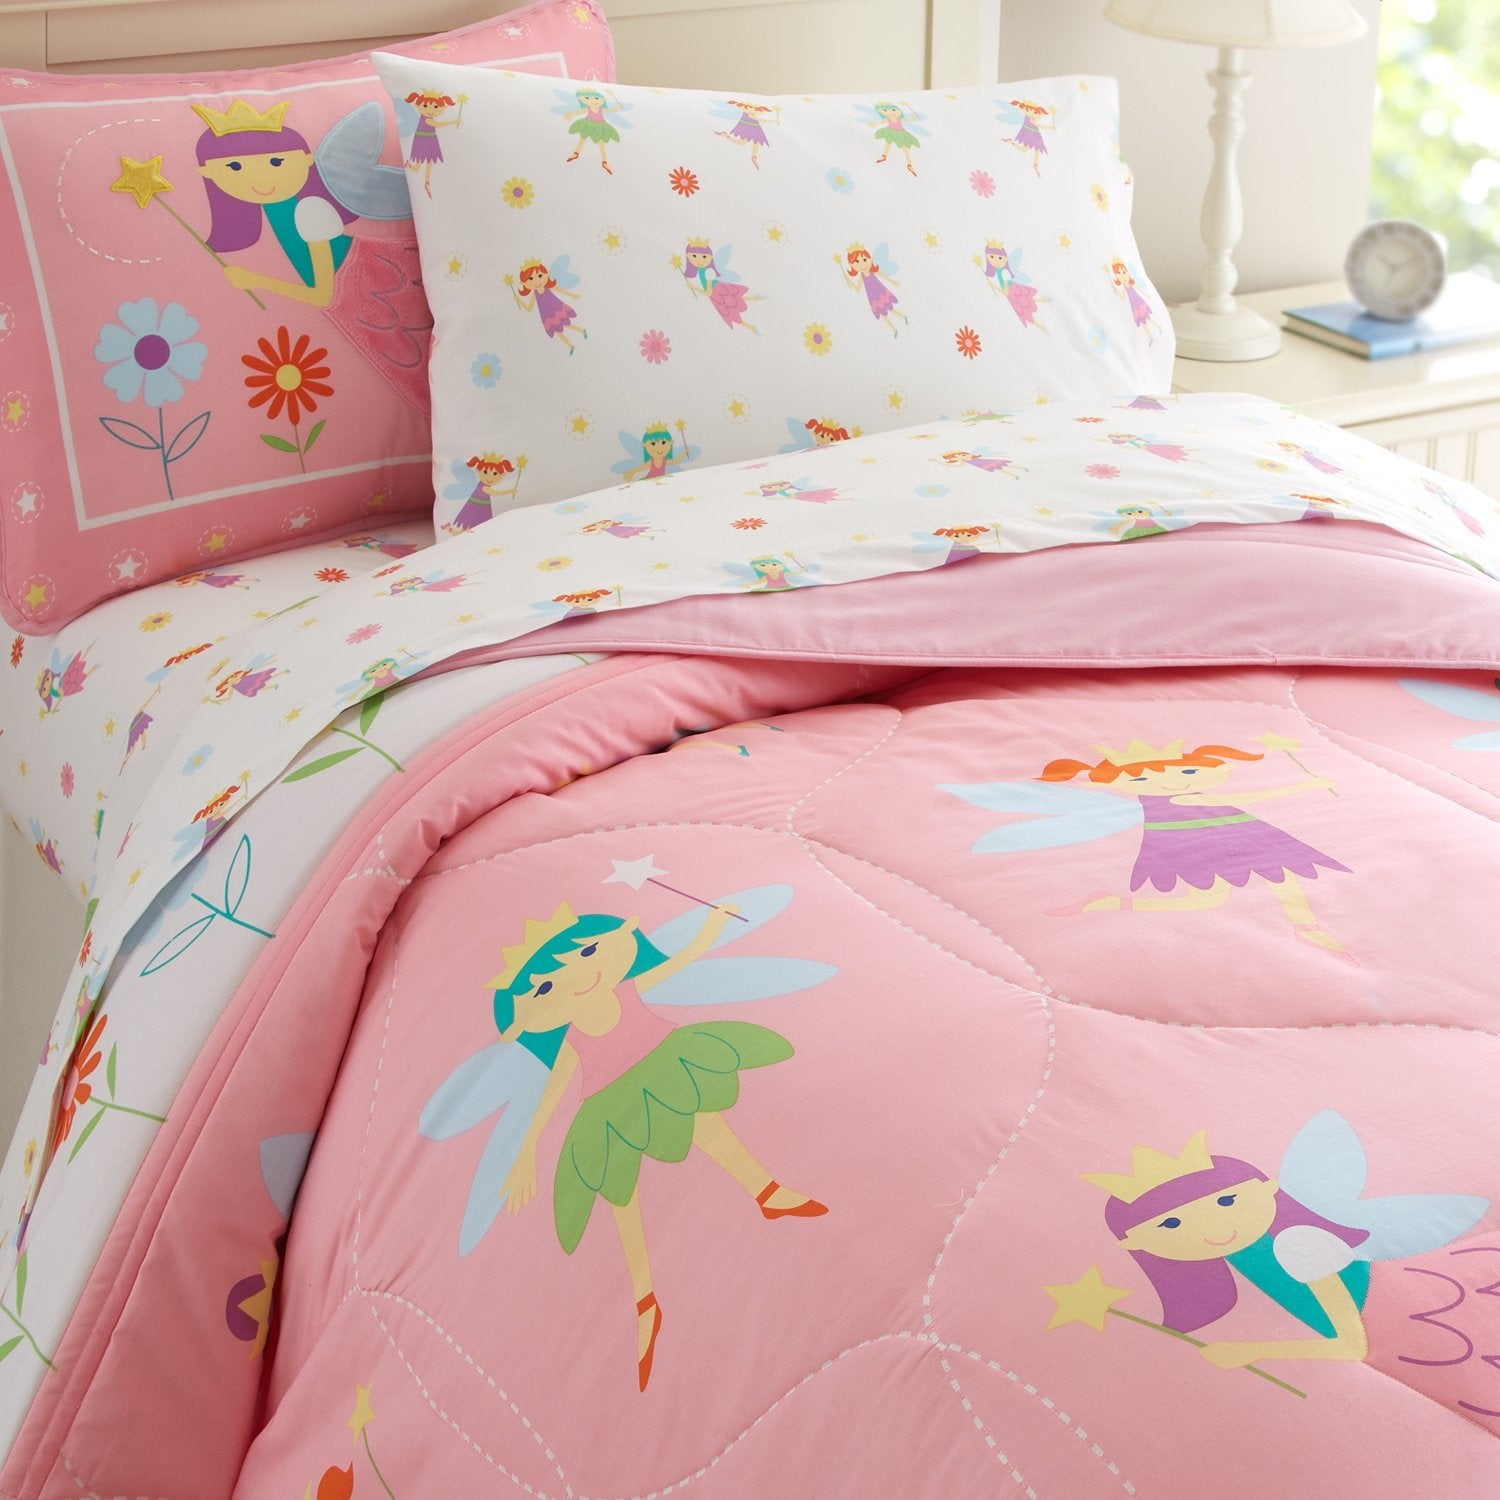 Fairy Princess Comforter Set with Sheets